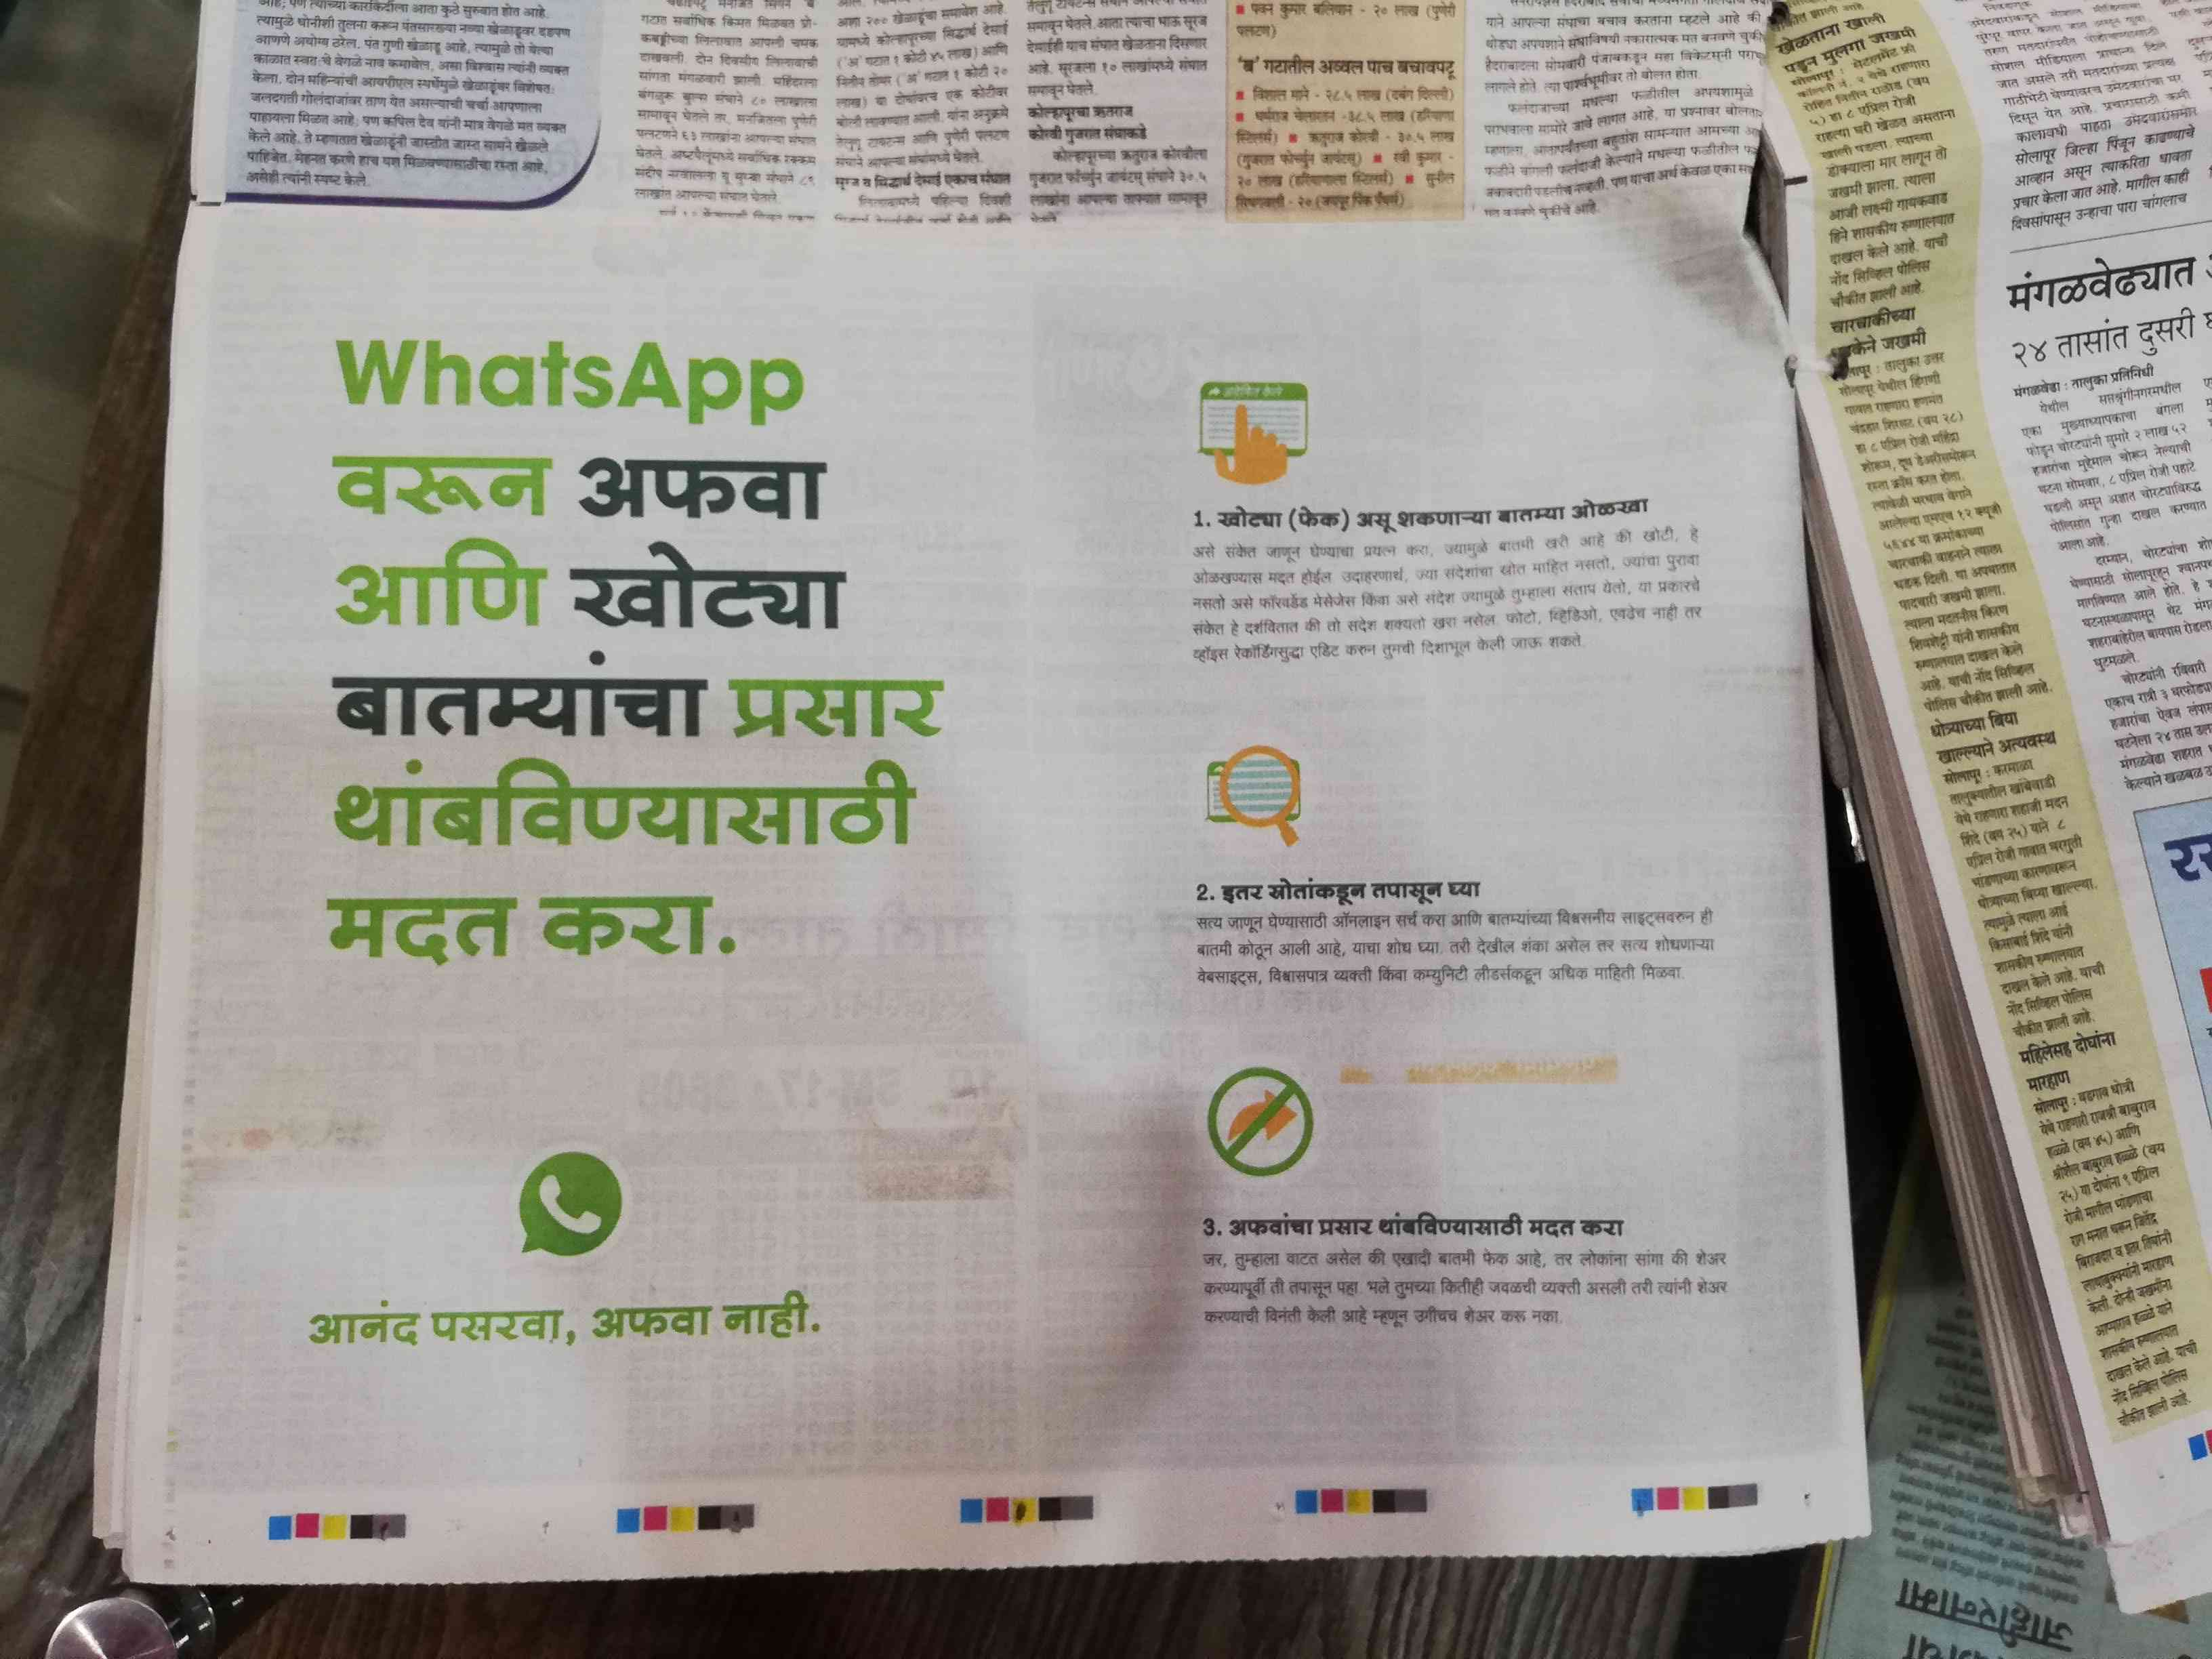 An ad in a Marathi newspaper asks people to help curb the spread of fake news and inflammatory messages on WhatsApp. (Photo credit: Mridula Chari).